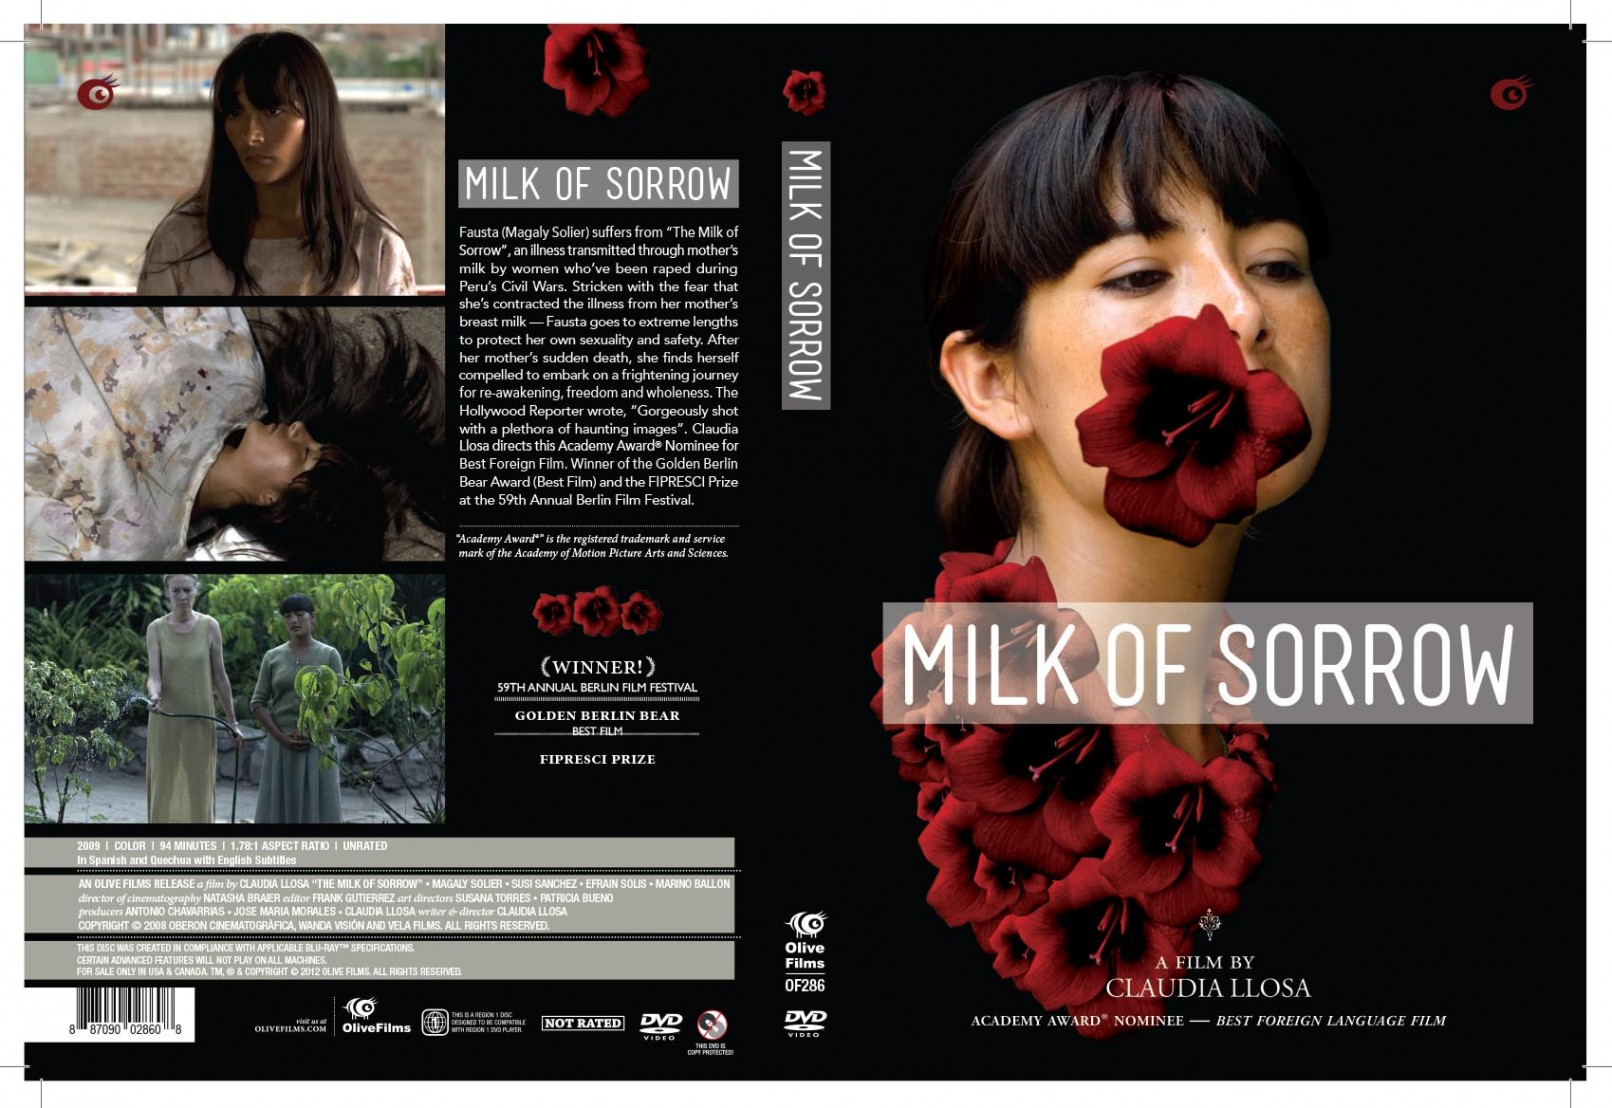 a film analysis of milk of sorrow by claudua llosa Director: claudia llosa starring: magaly solier, susi sánchez, efraín solís and others.